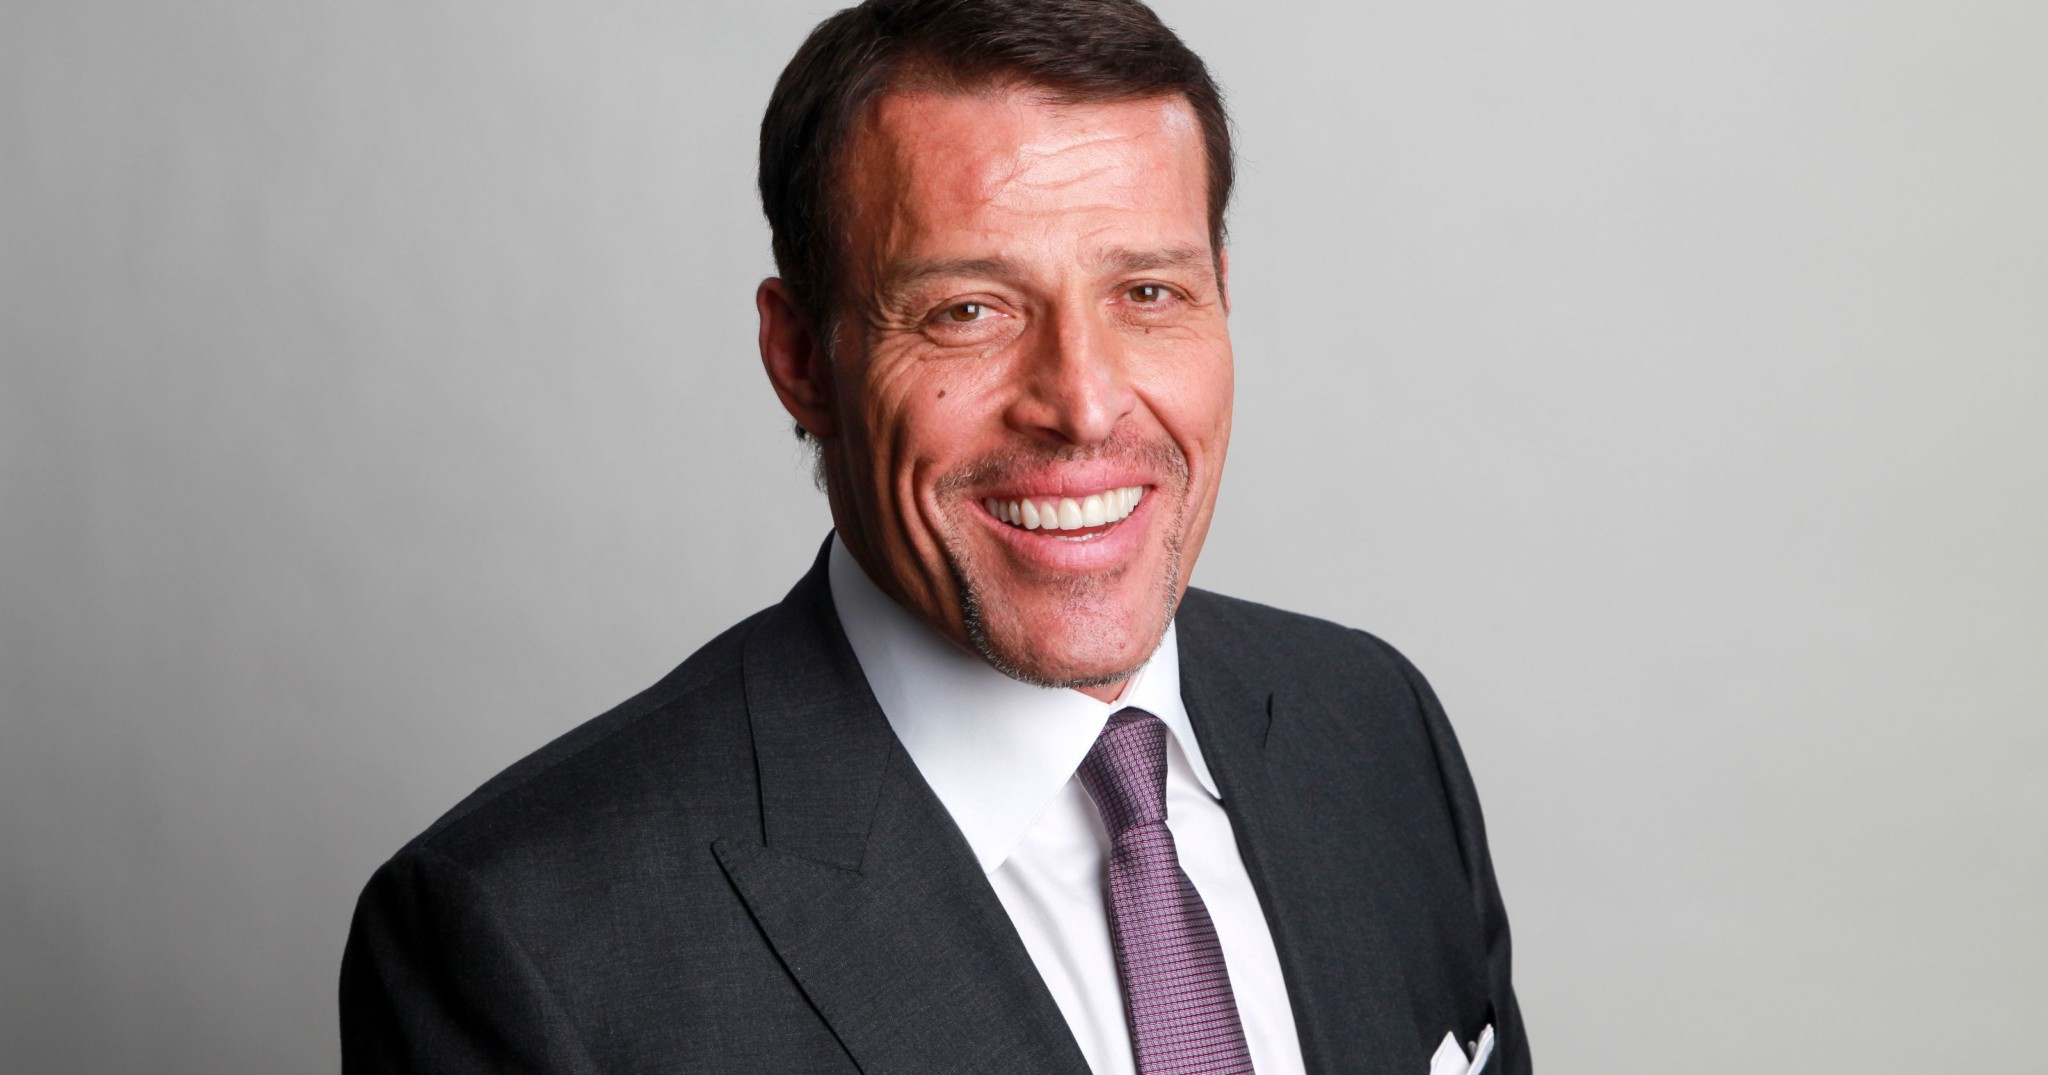 Tony Robbins House – What Properties does he own?